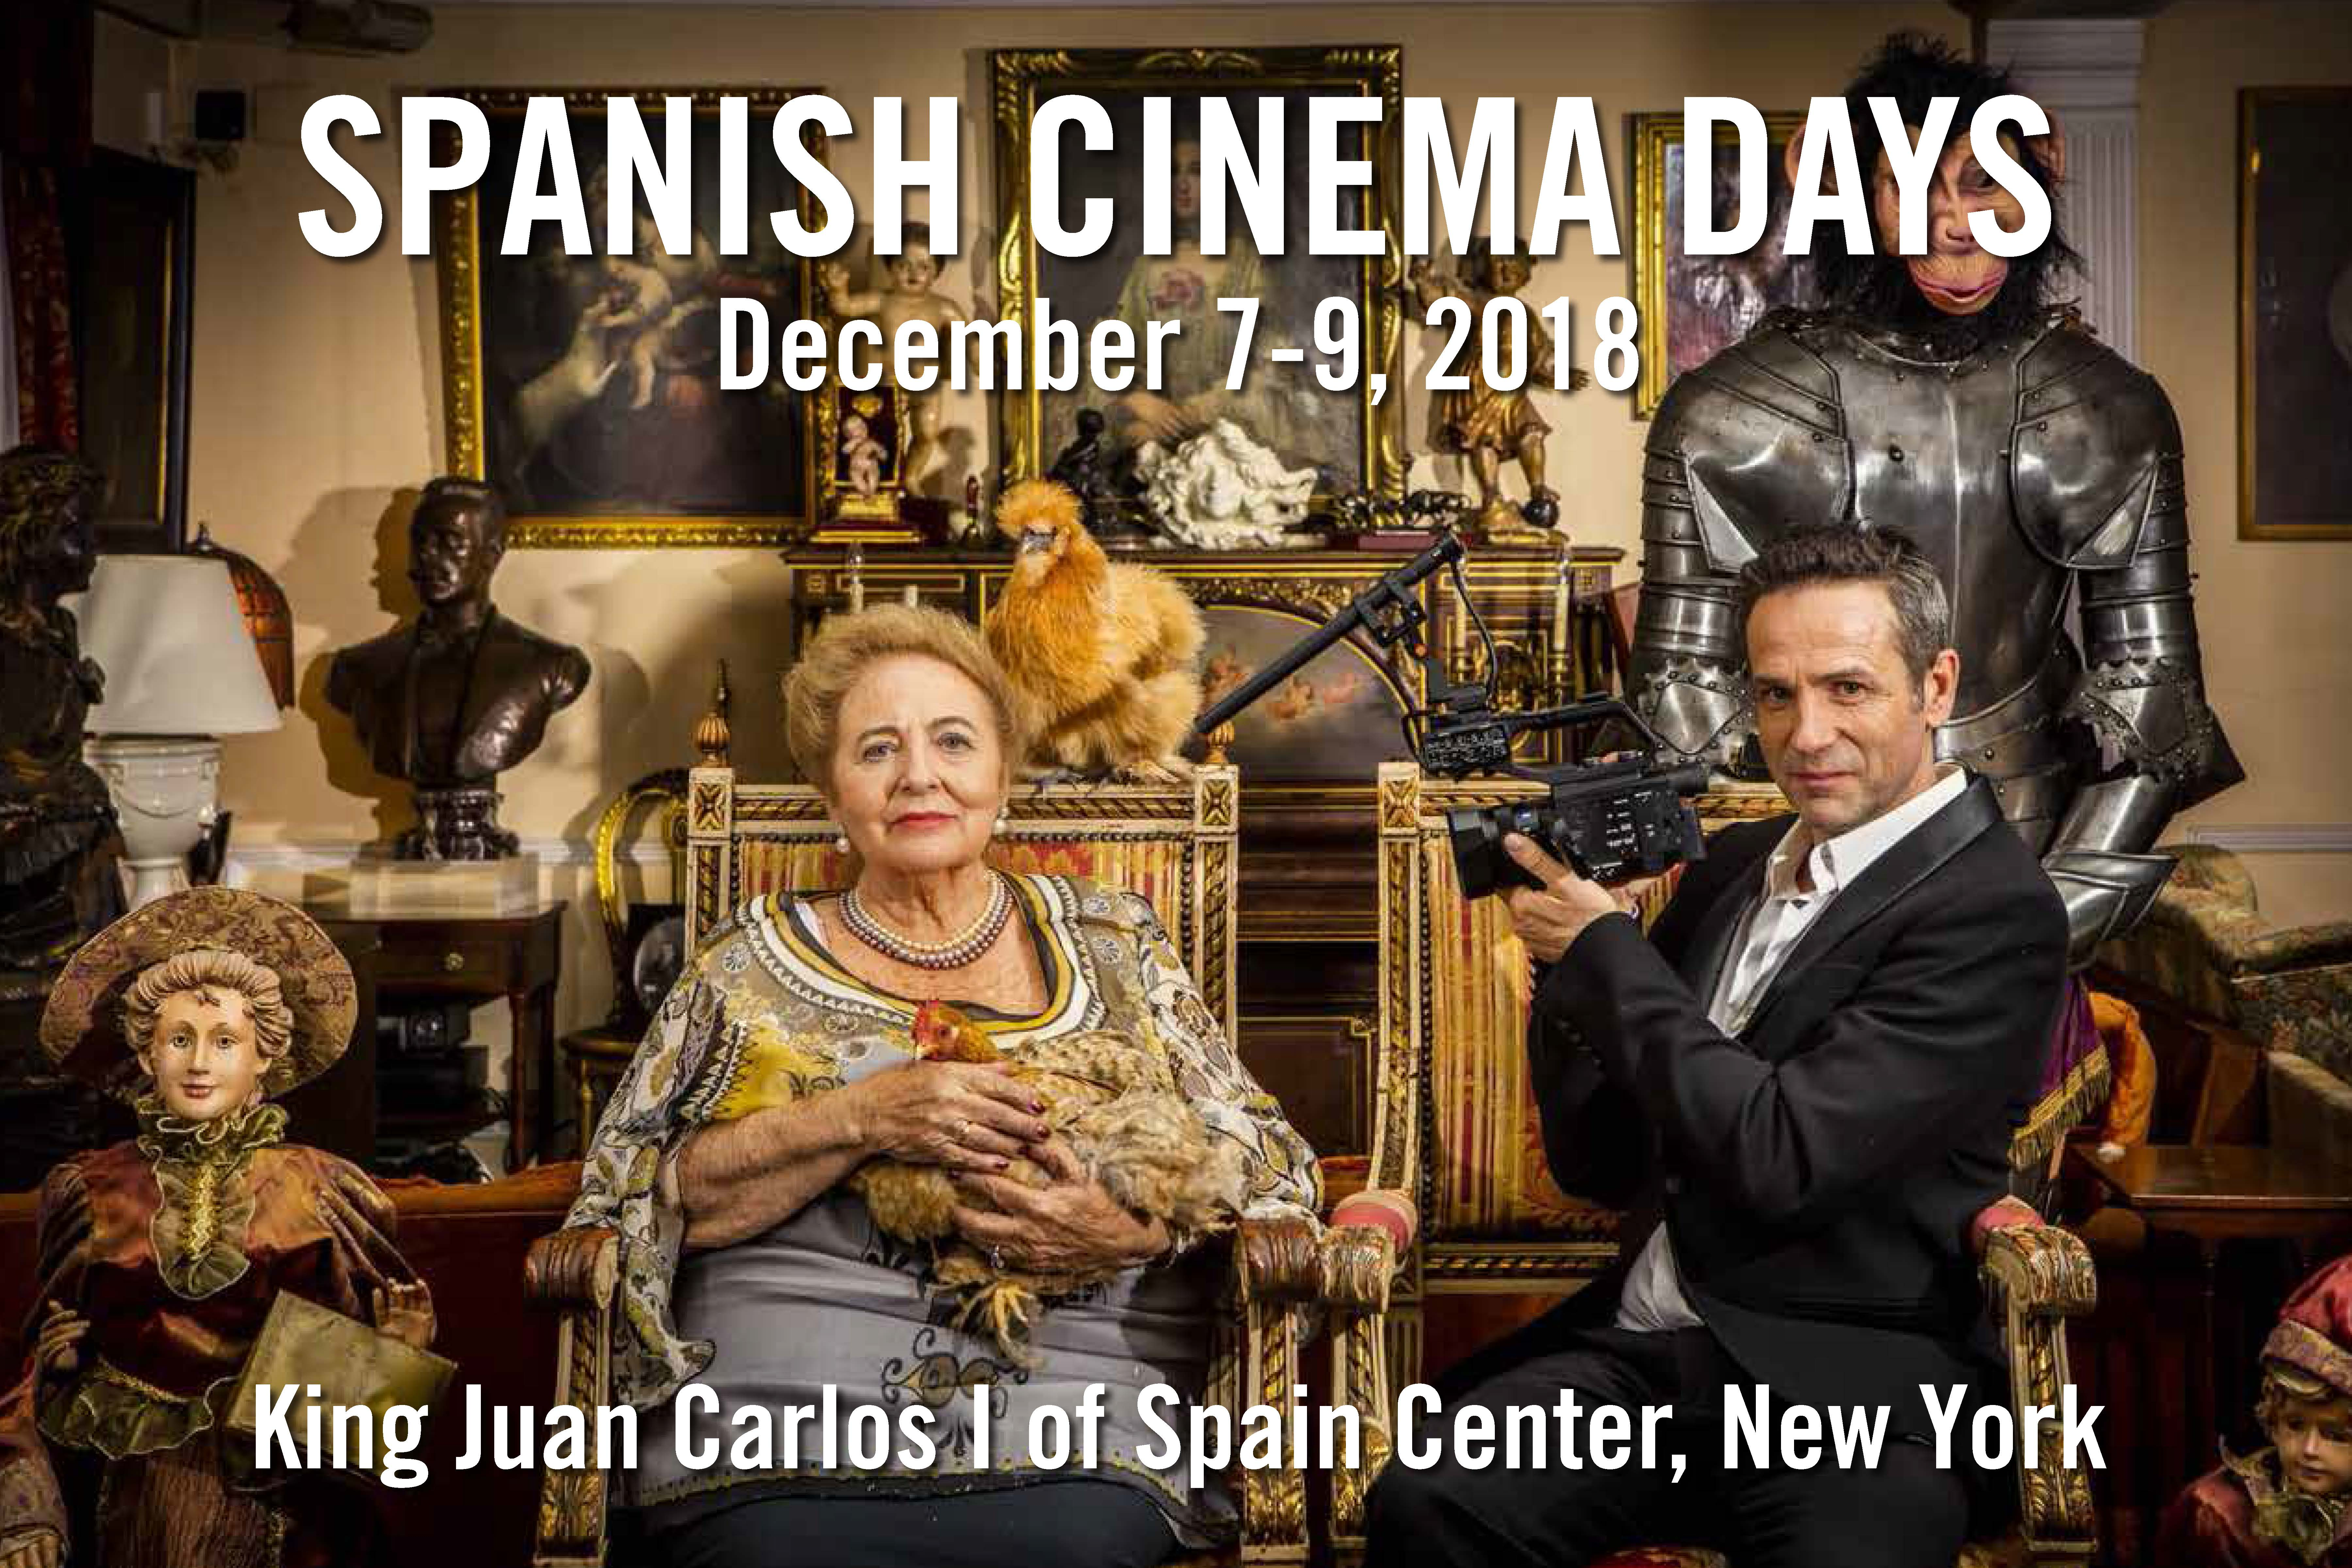 image from Spanish Cinema Days: Recent films from Spain (2016-2017)